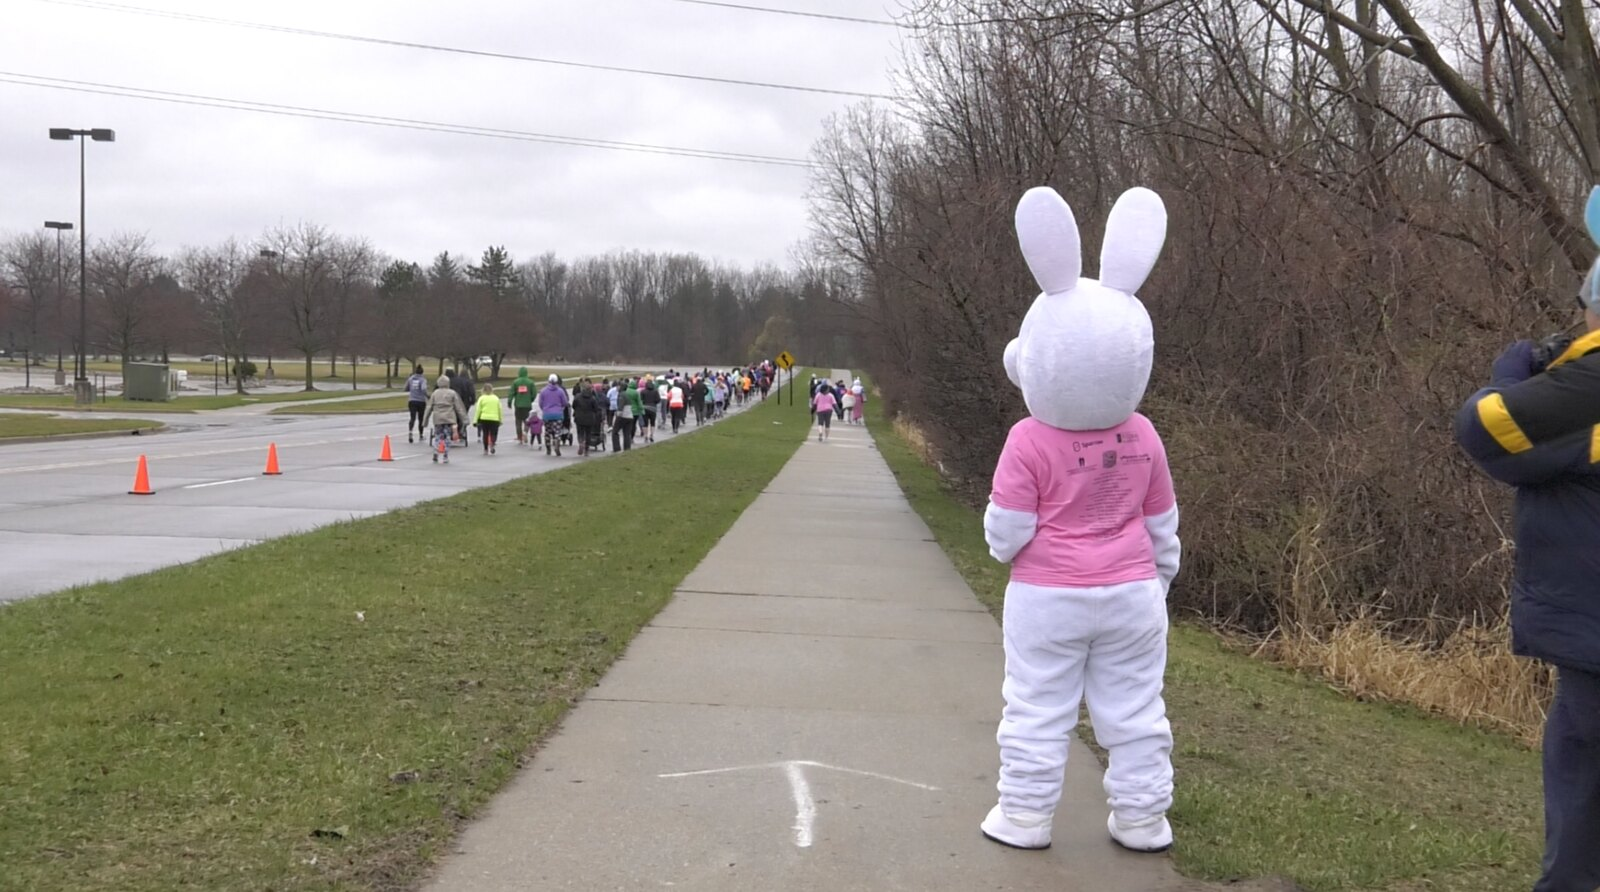 Hippity Hop 5k Goes on Despite Weather